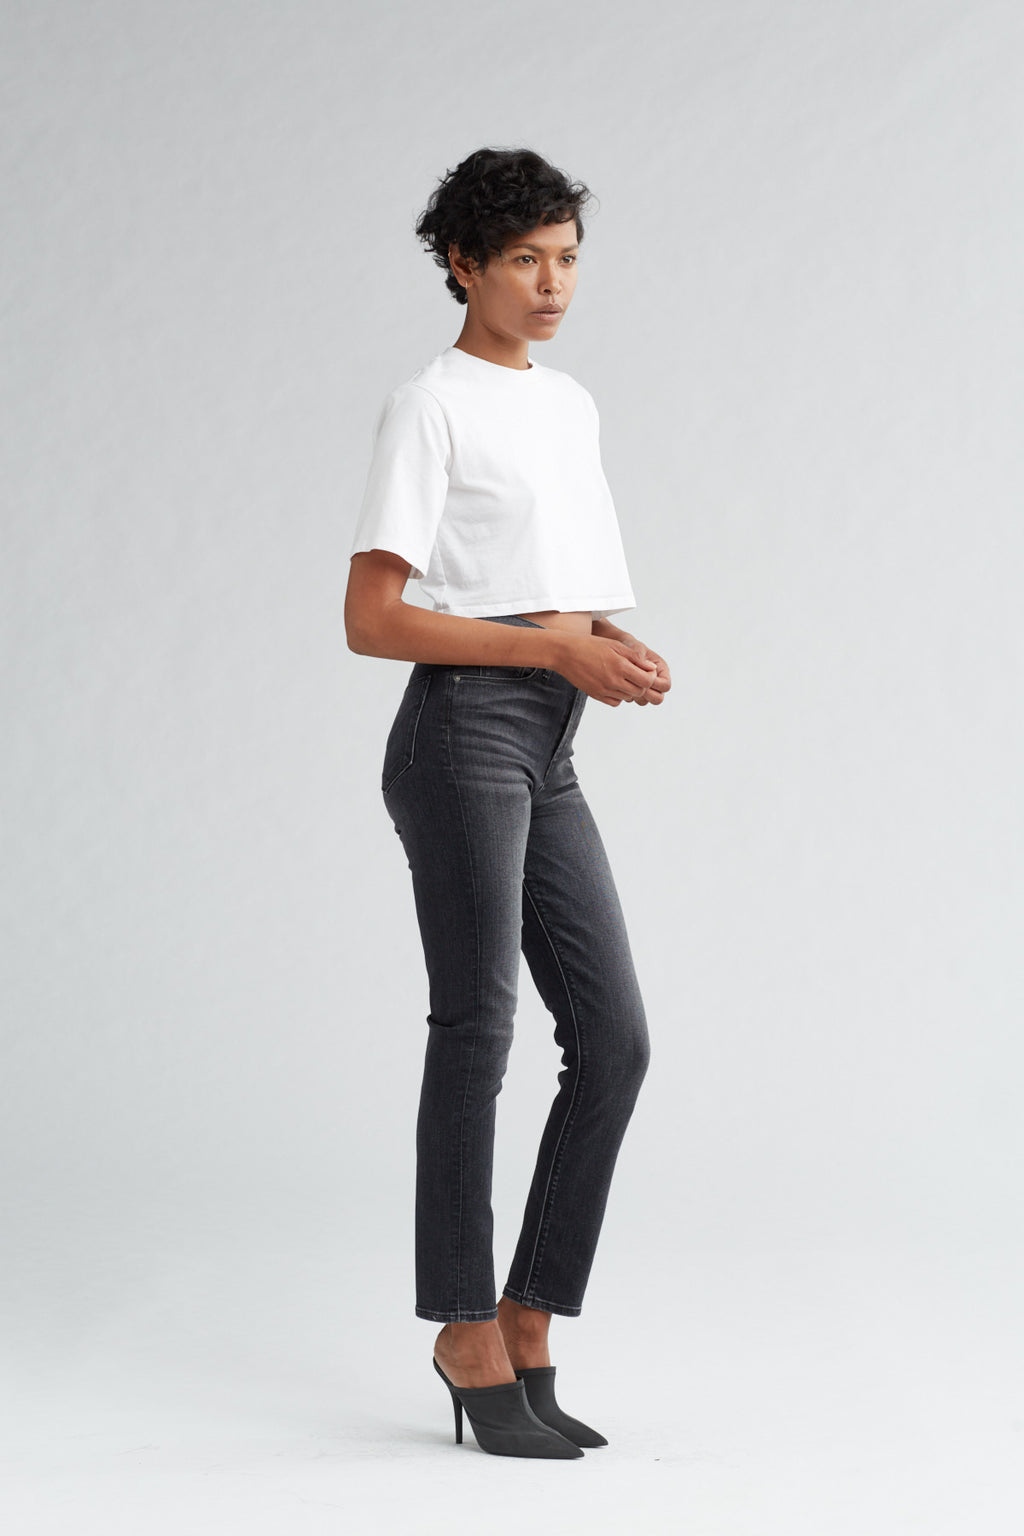 HOLLY HIGH RISE SKINNY CROP JEAN - KONA - Image 2